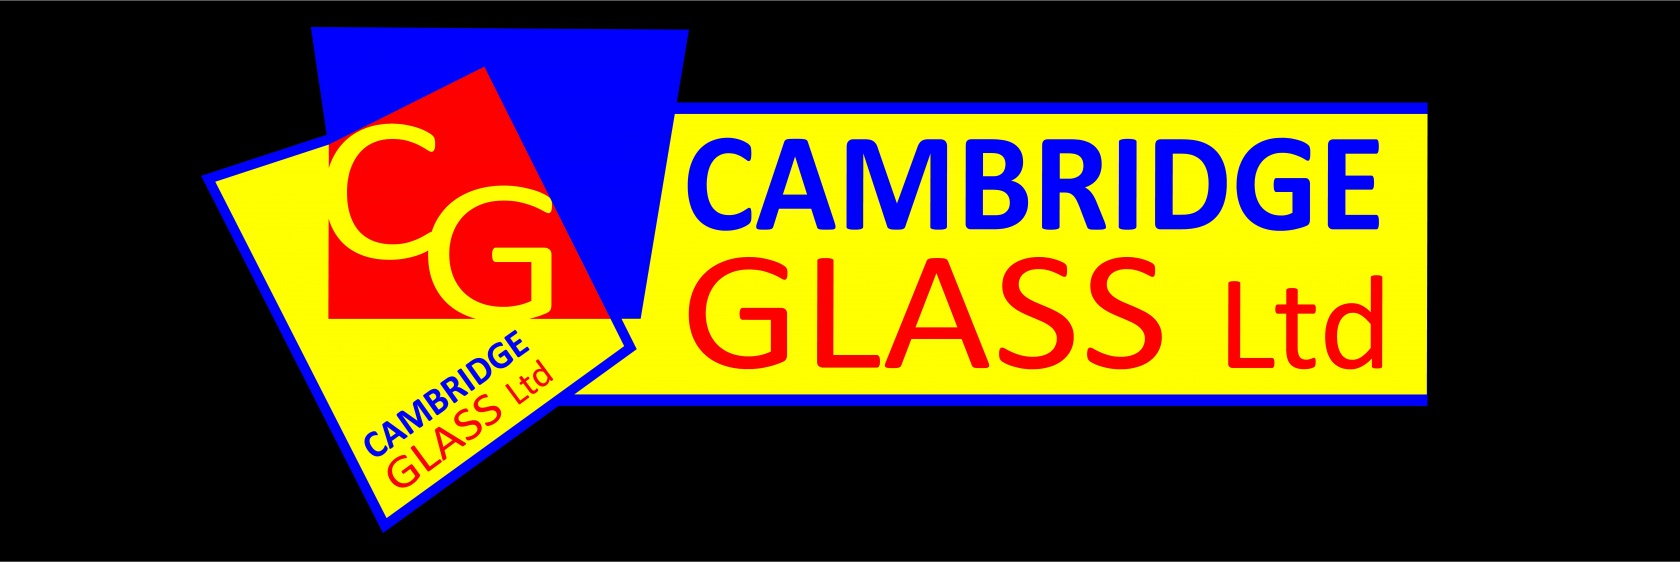 Cambridge Glass Logo - Hight def